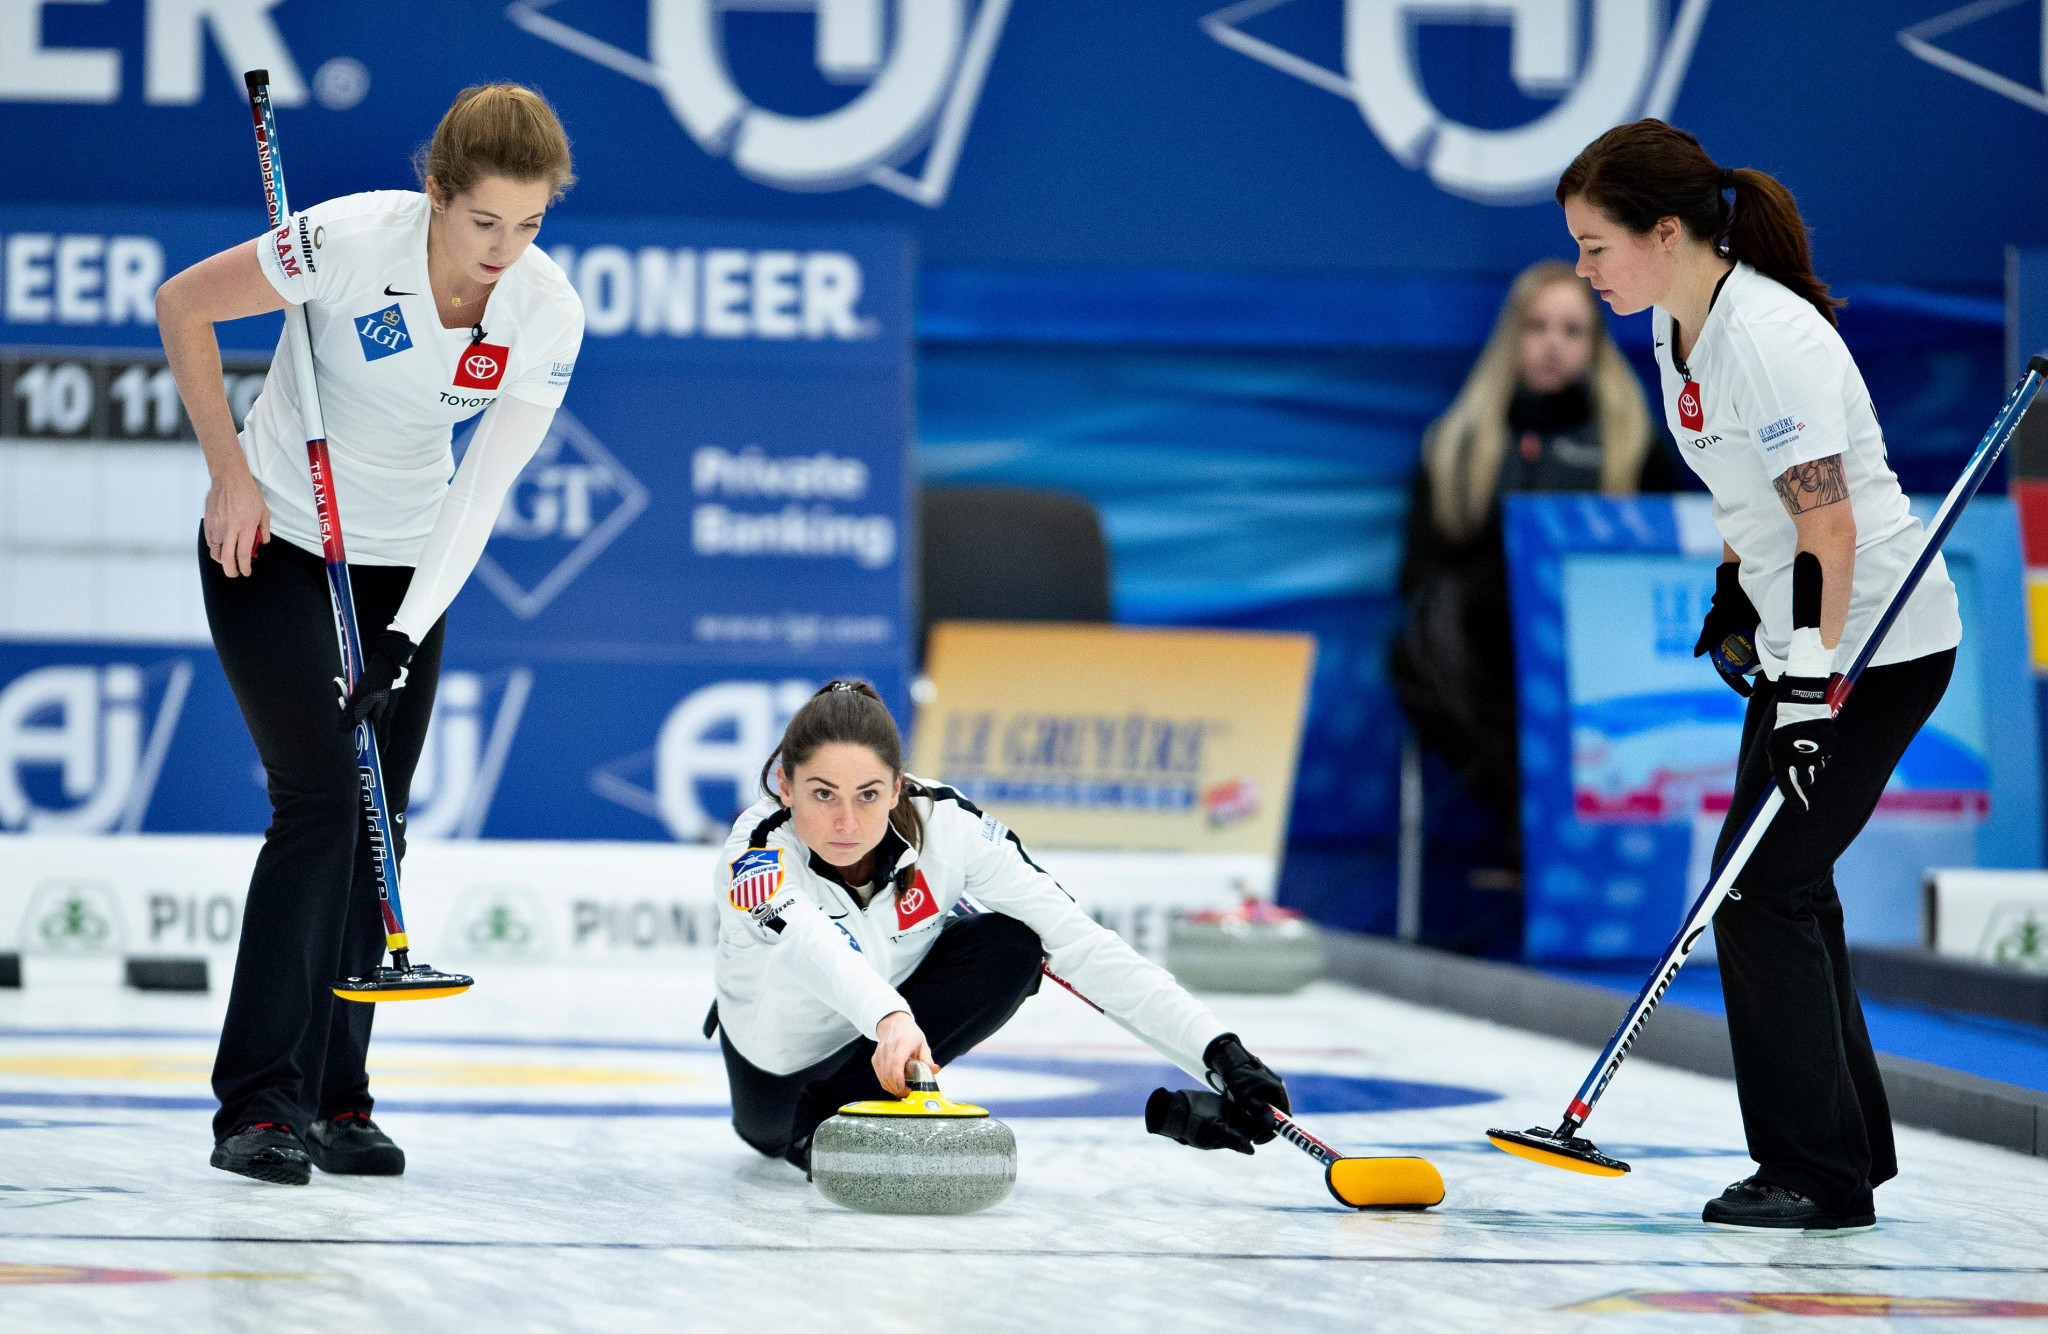 Curling Night in America set to be filmed in California for first time